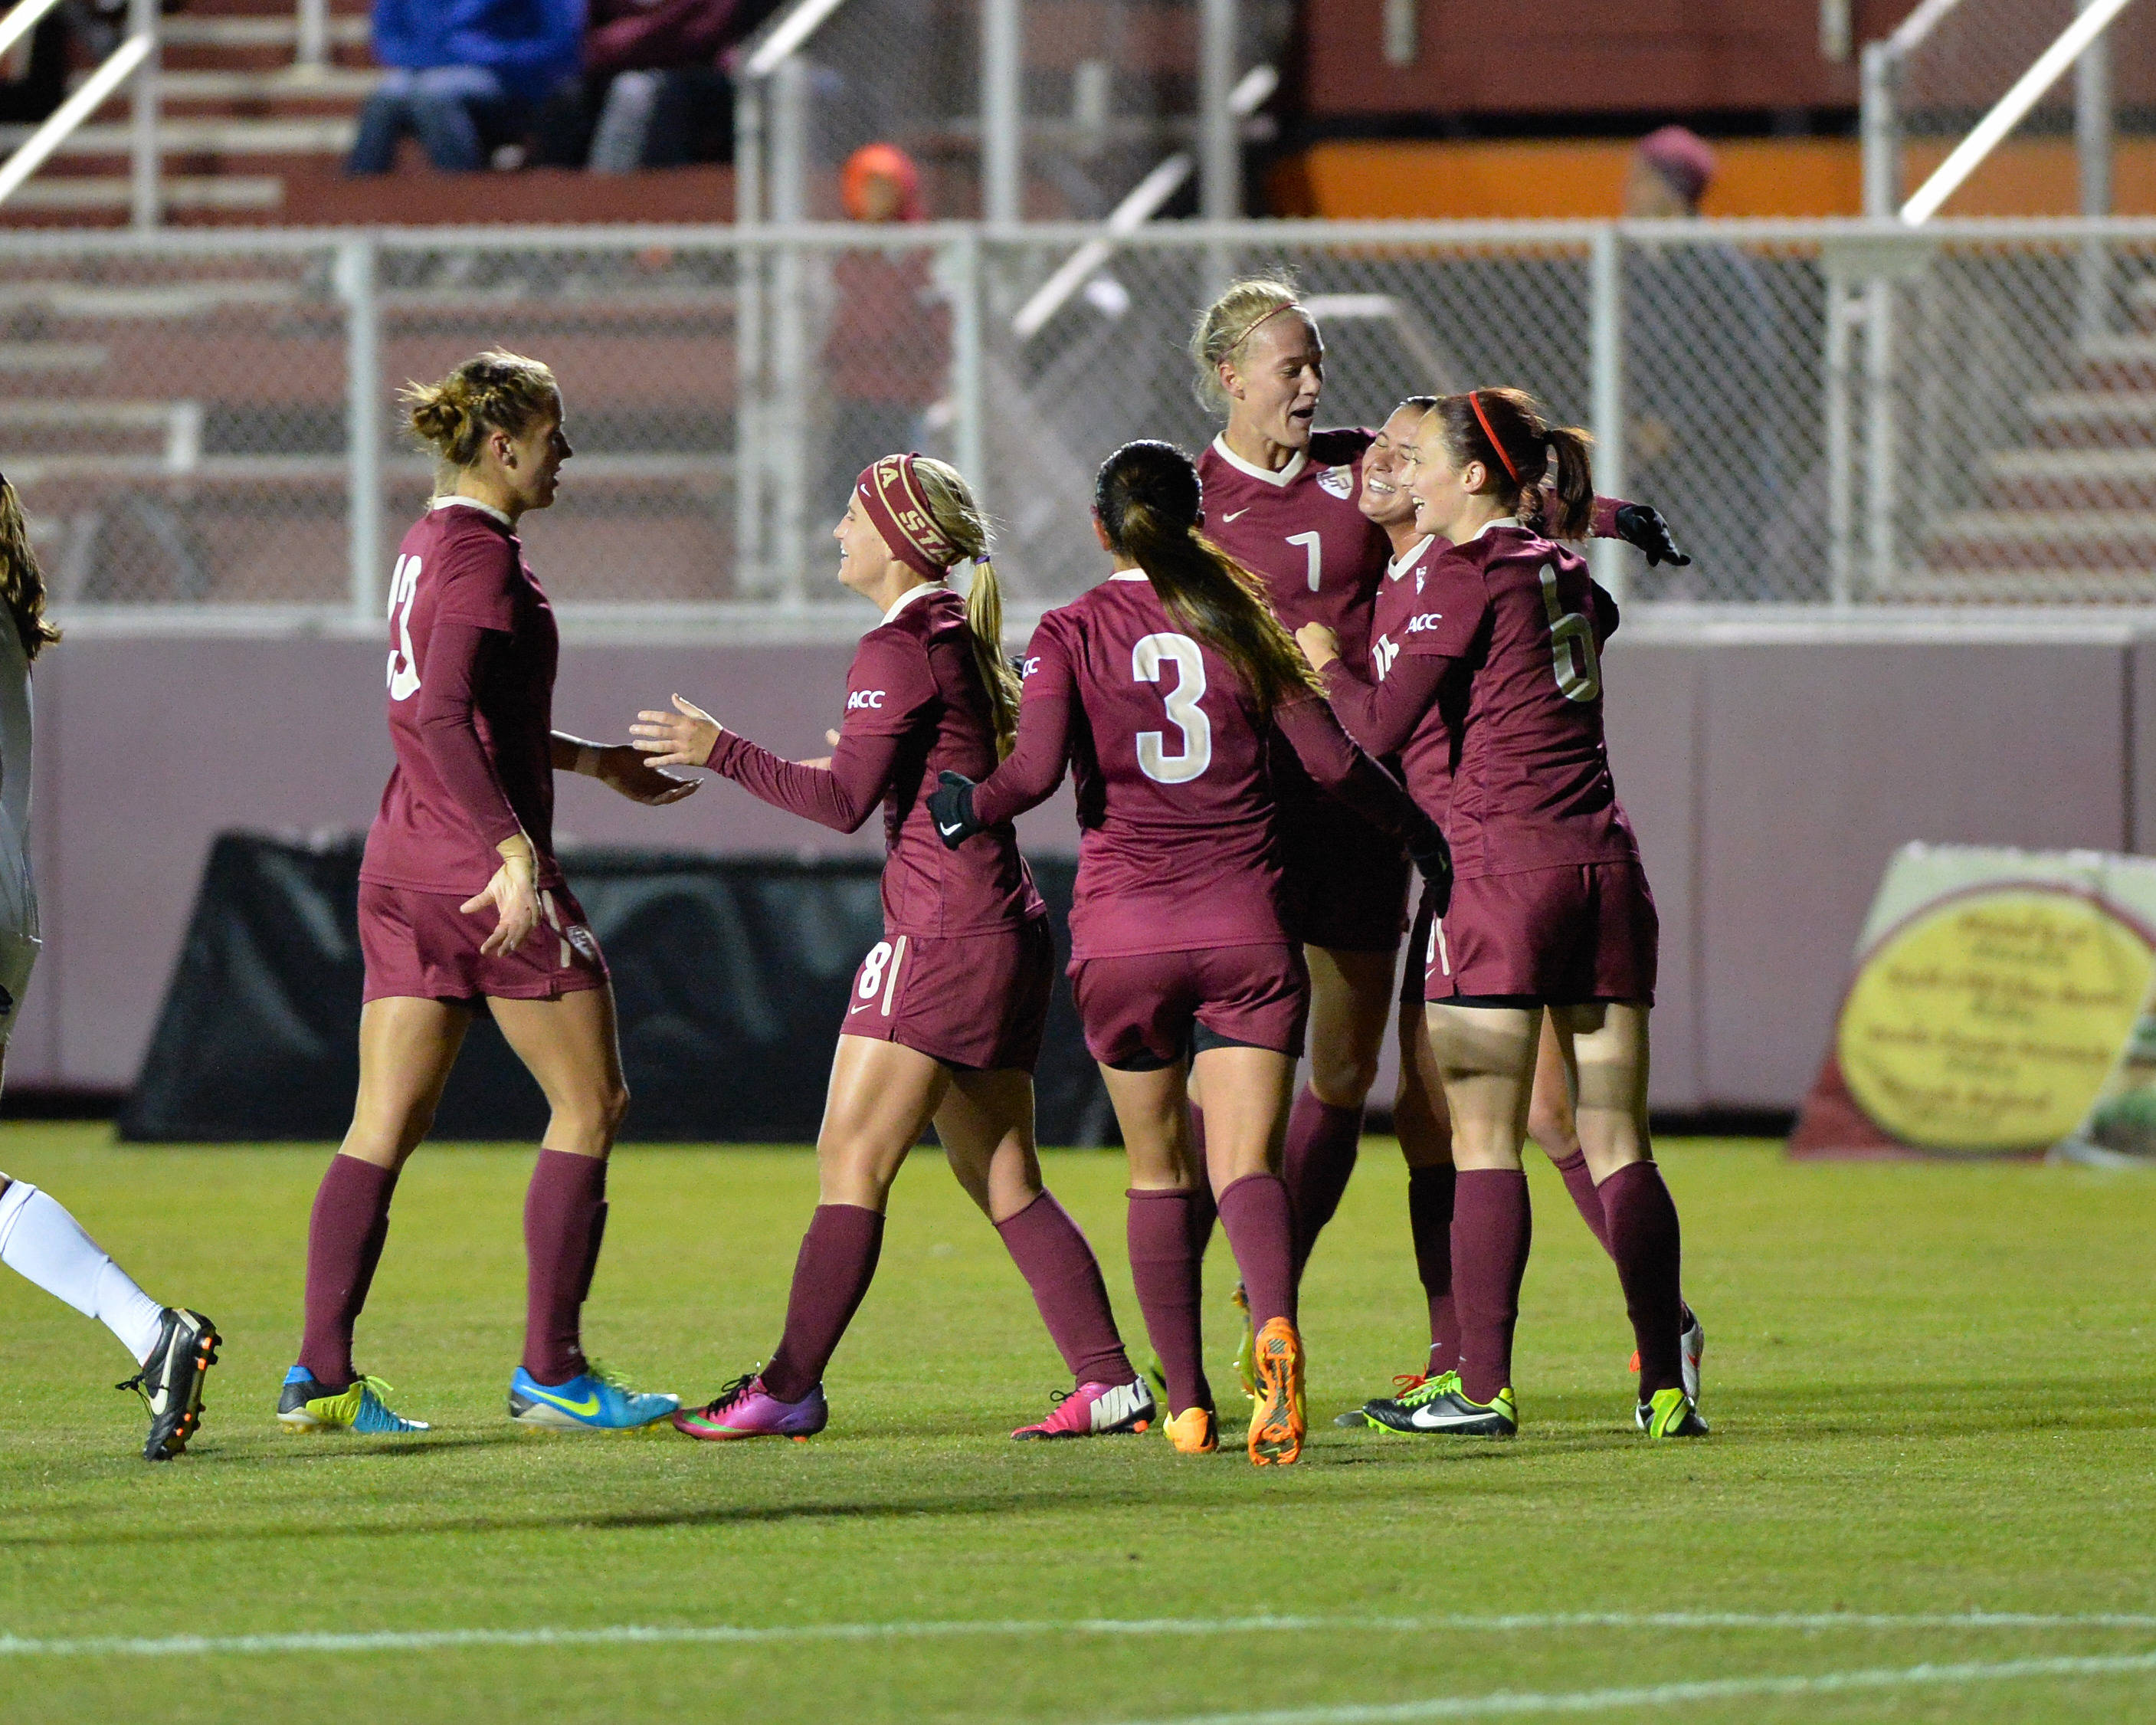 The Seminoles celebrate after Dagny Brynjarsdottir's second goal of the game in the 87th minute.